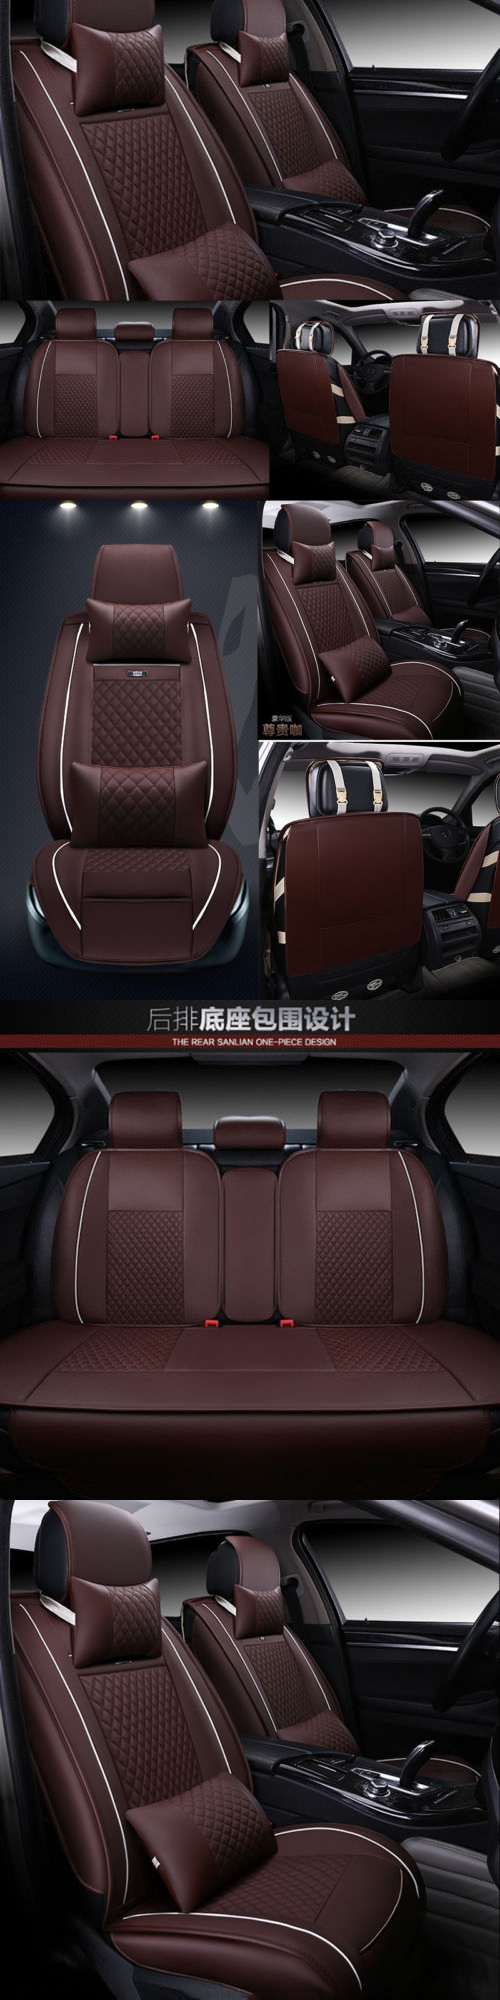 Luxury Cars New Coffee Car 5 Seat Pu Leather Cover Front